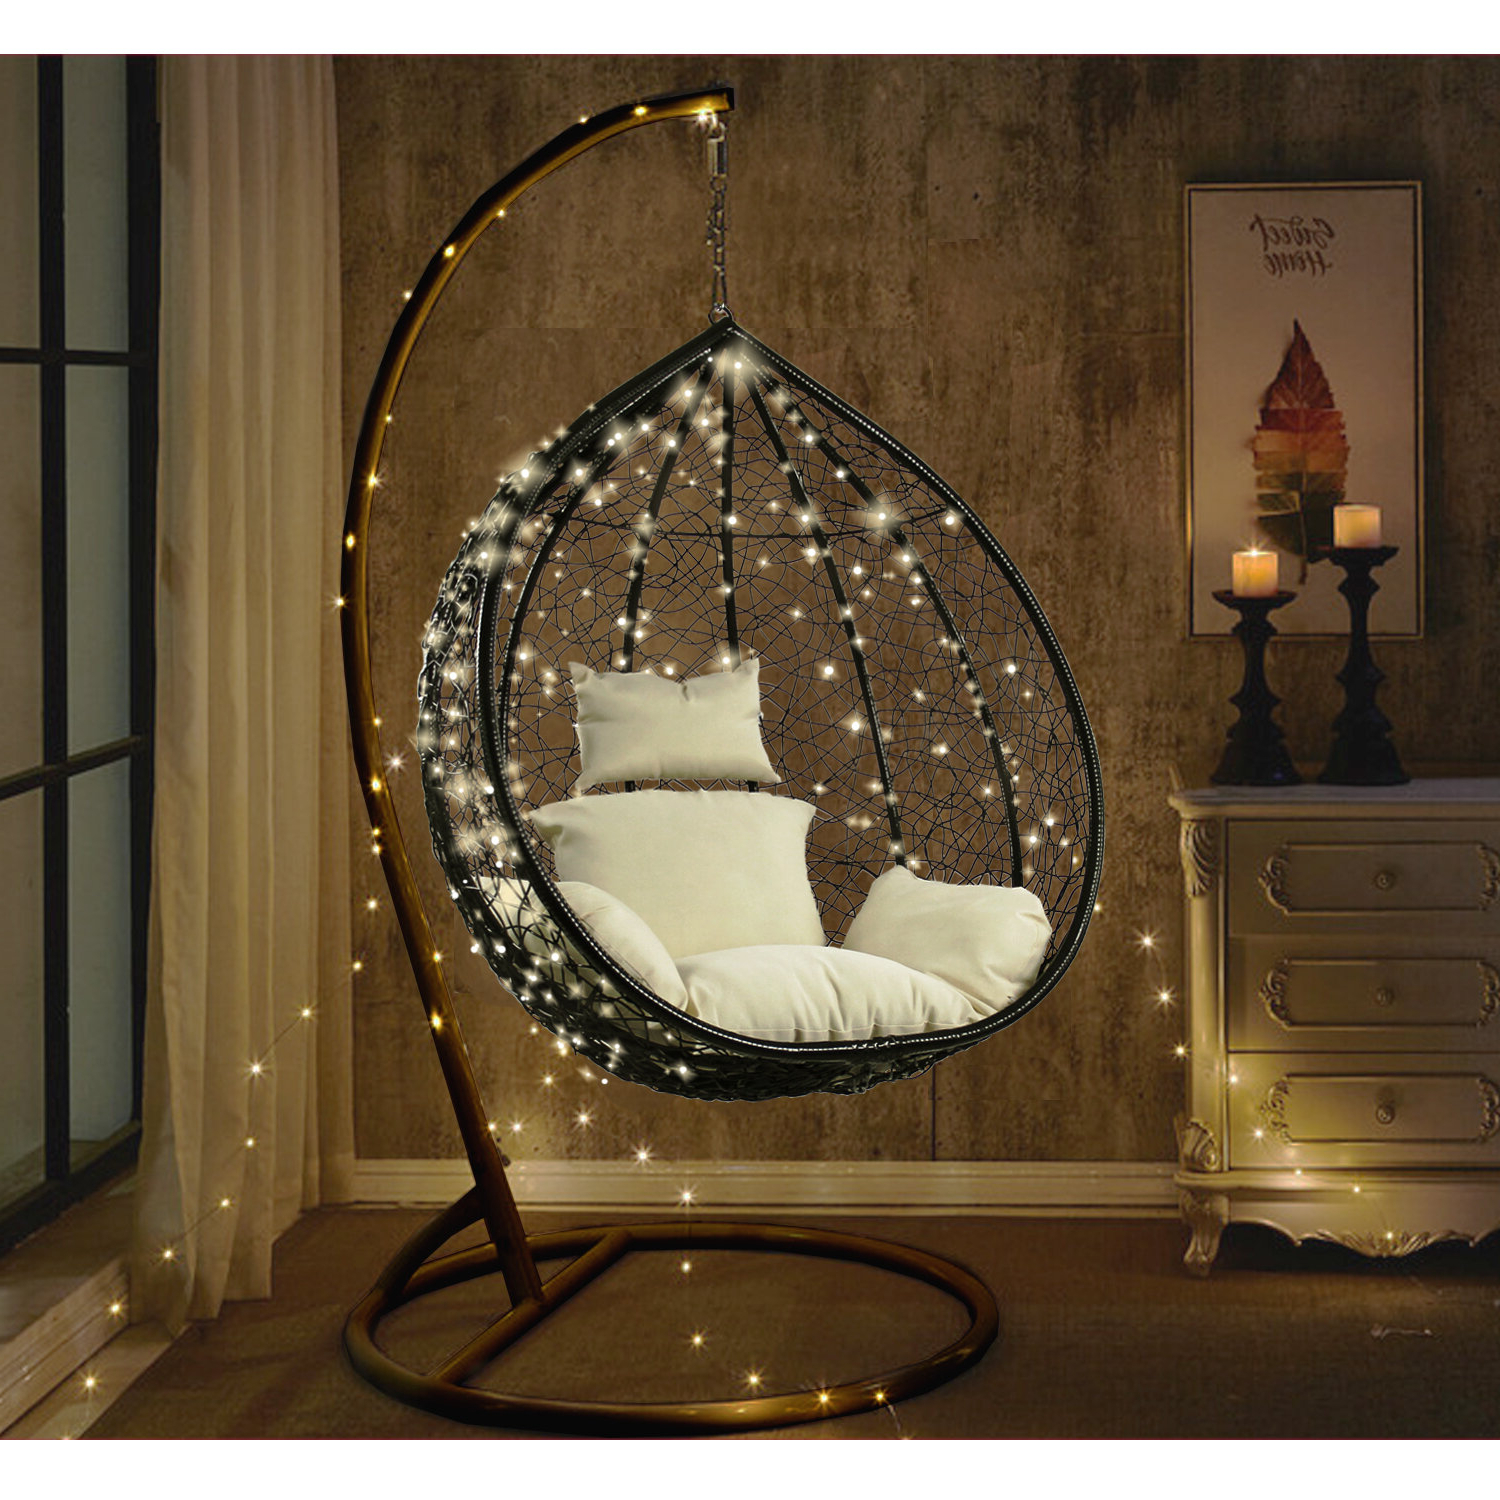 Outdoor Wicker Plastic Half Moon Leaf Shape Porch Swings Throughout Fashionable Hobbs Outdoor Wicker Plastic Tear Porch Swing With Stand (View 15 of 25)